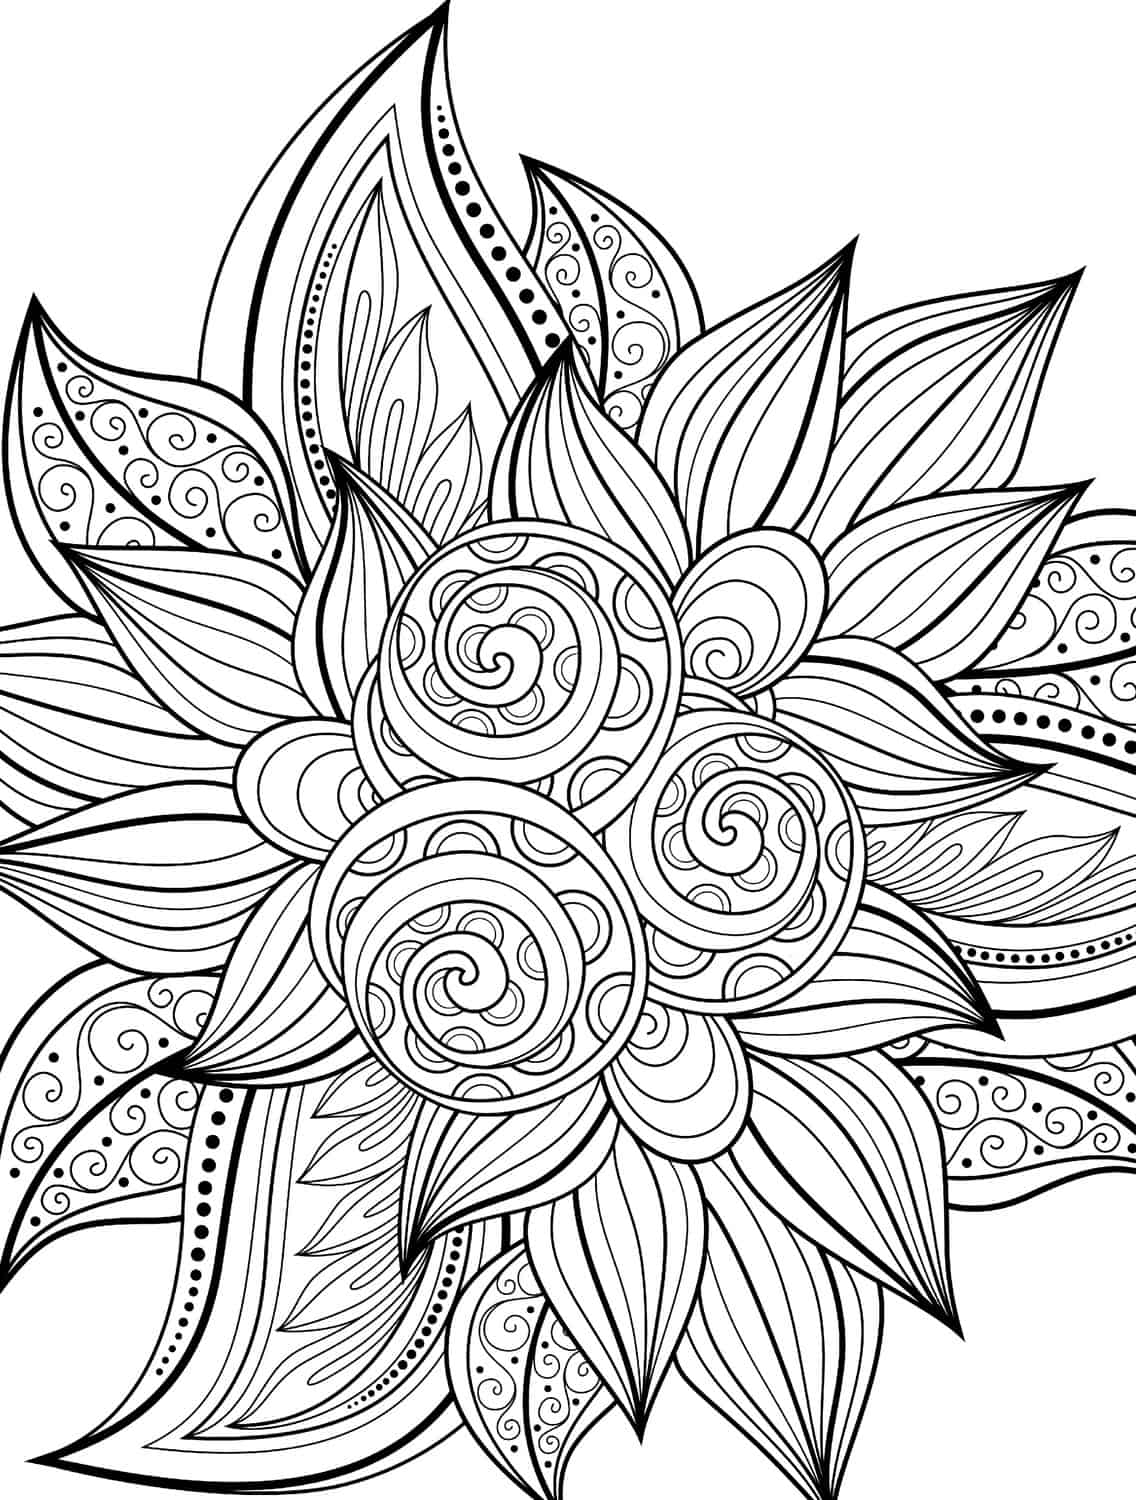 coloring pages to color online best free printable coloring pages for kids and teens pages color online coloring to